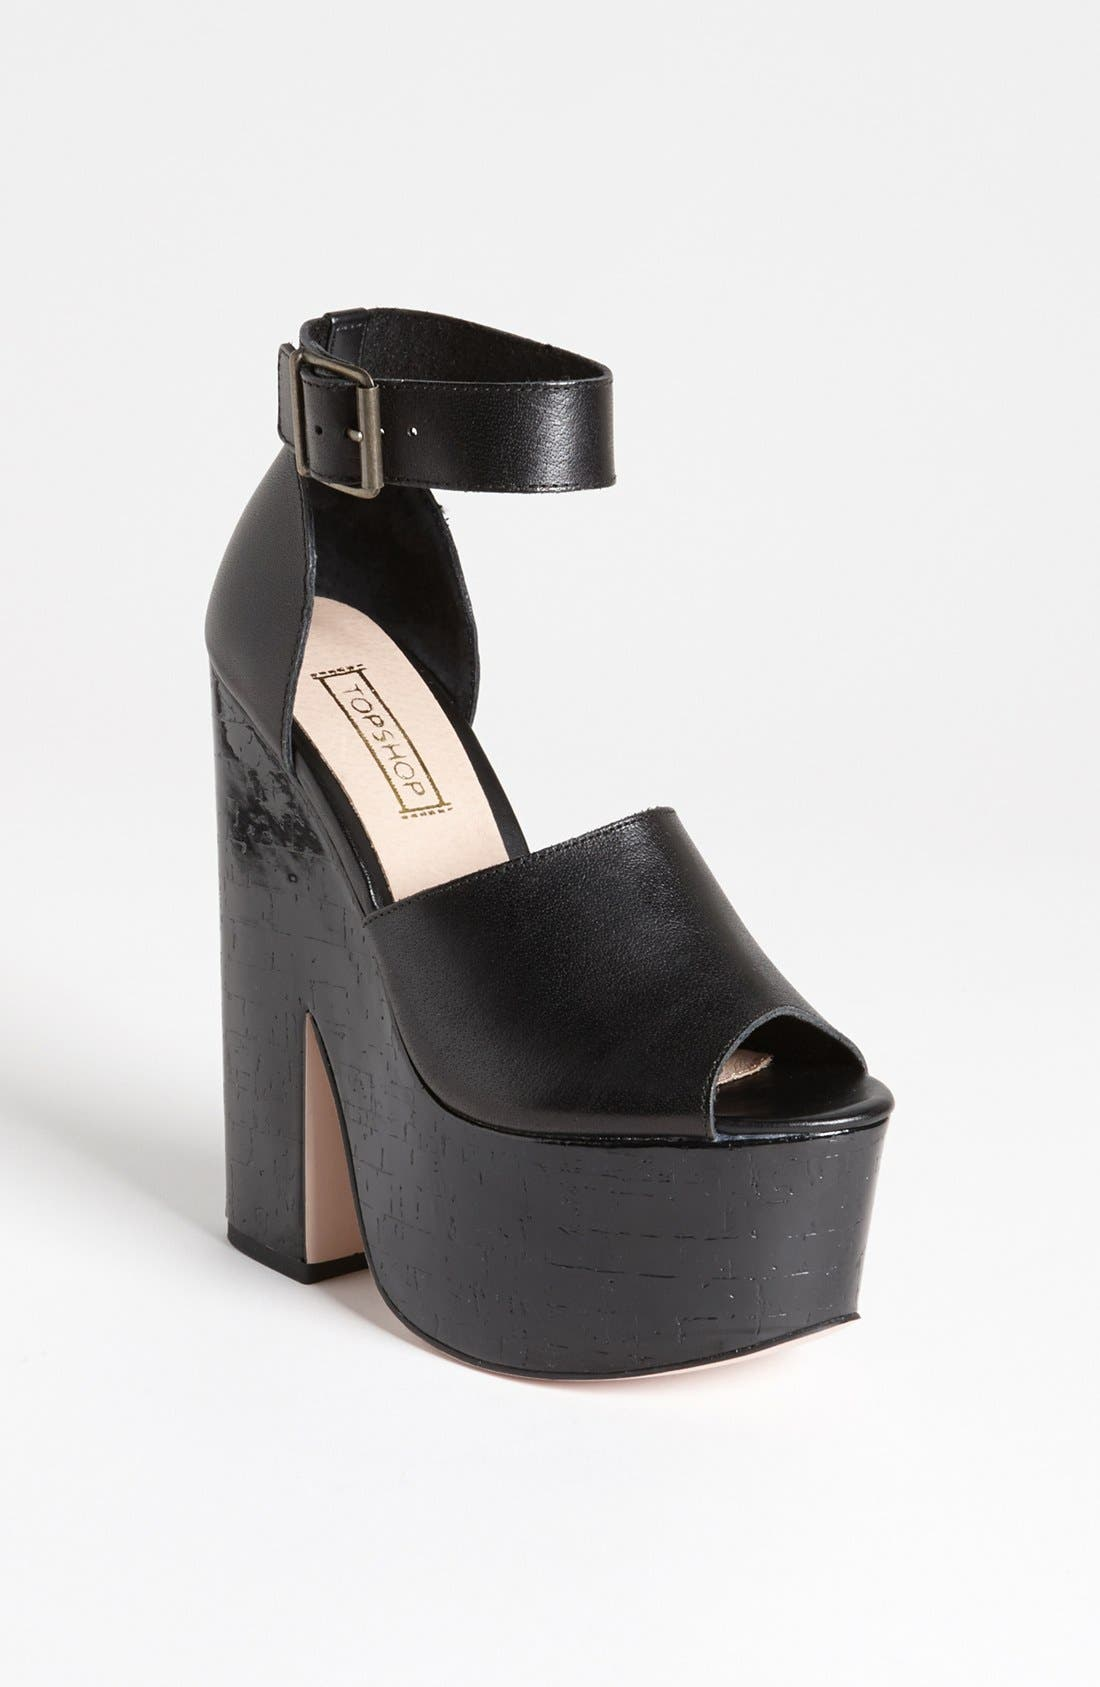 Alternate Image 1 Selected - Topshop 'Loud' Platform Sandal